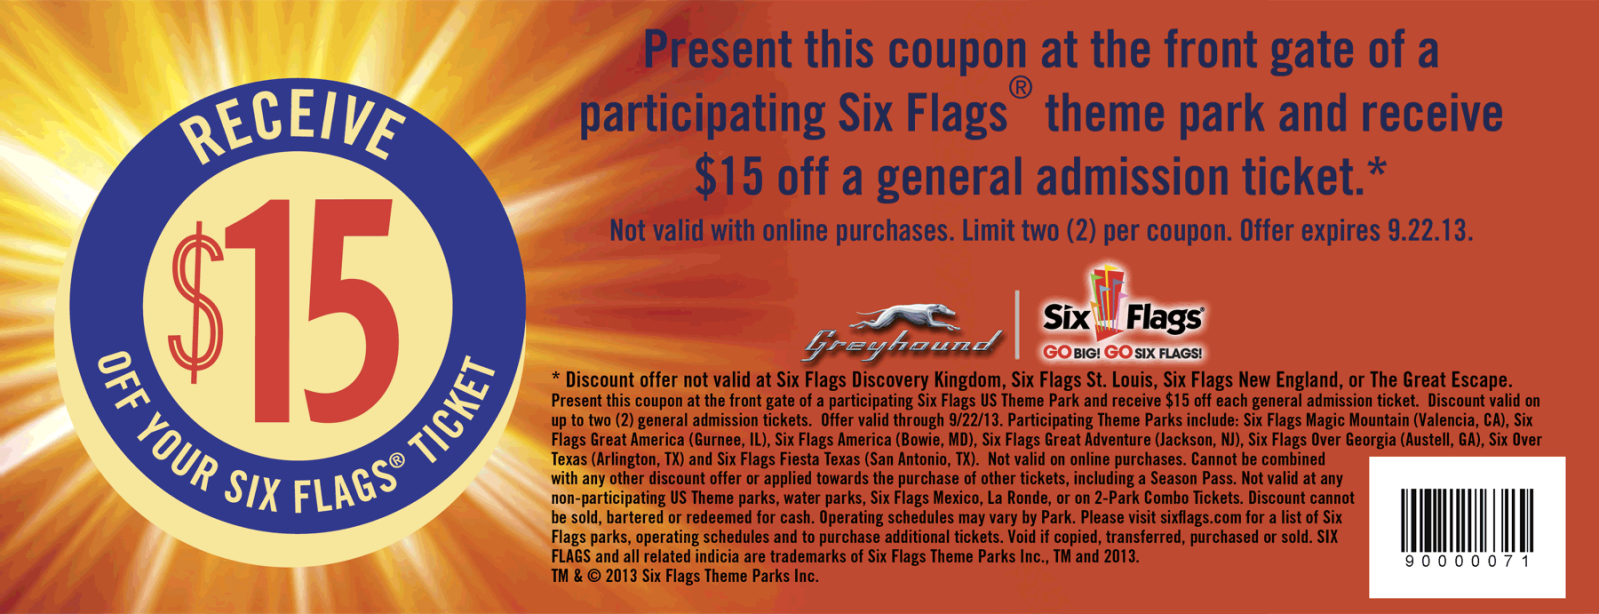 Six Flags Deal Printable Coupons Coupons For Free Items Coupons